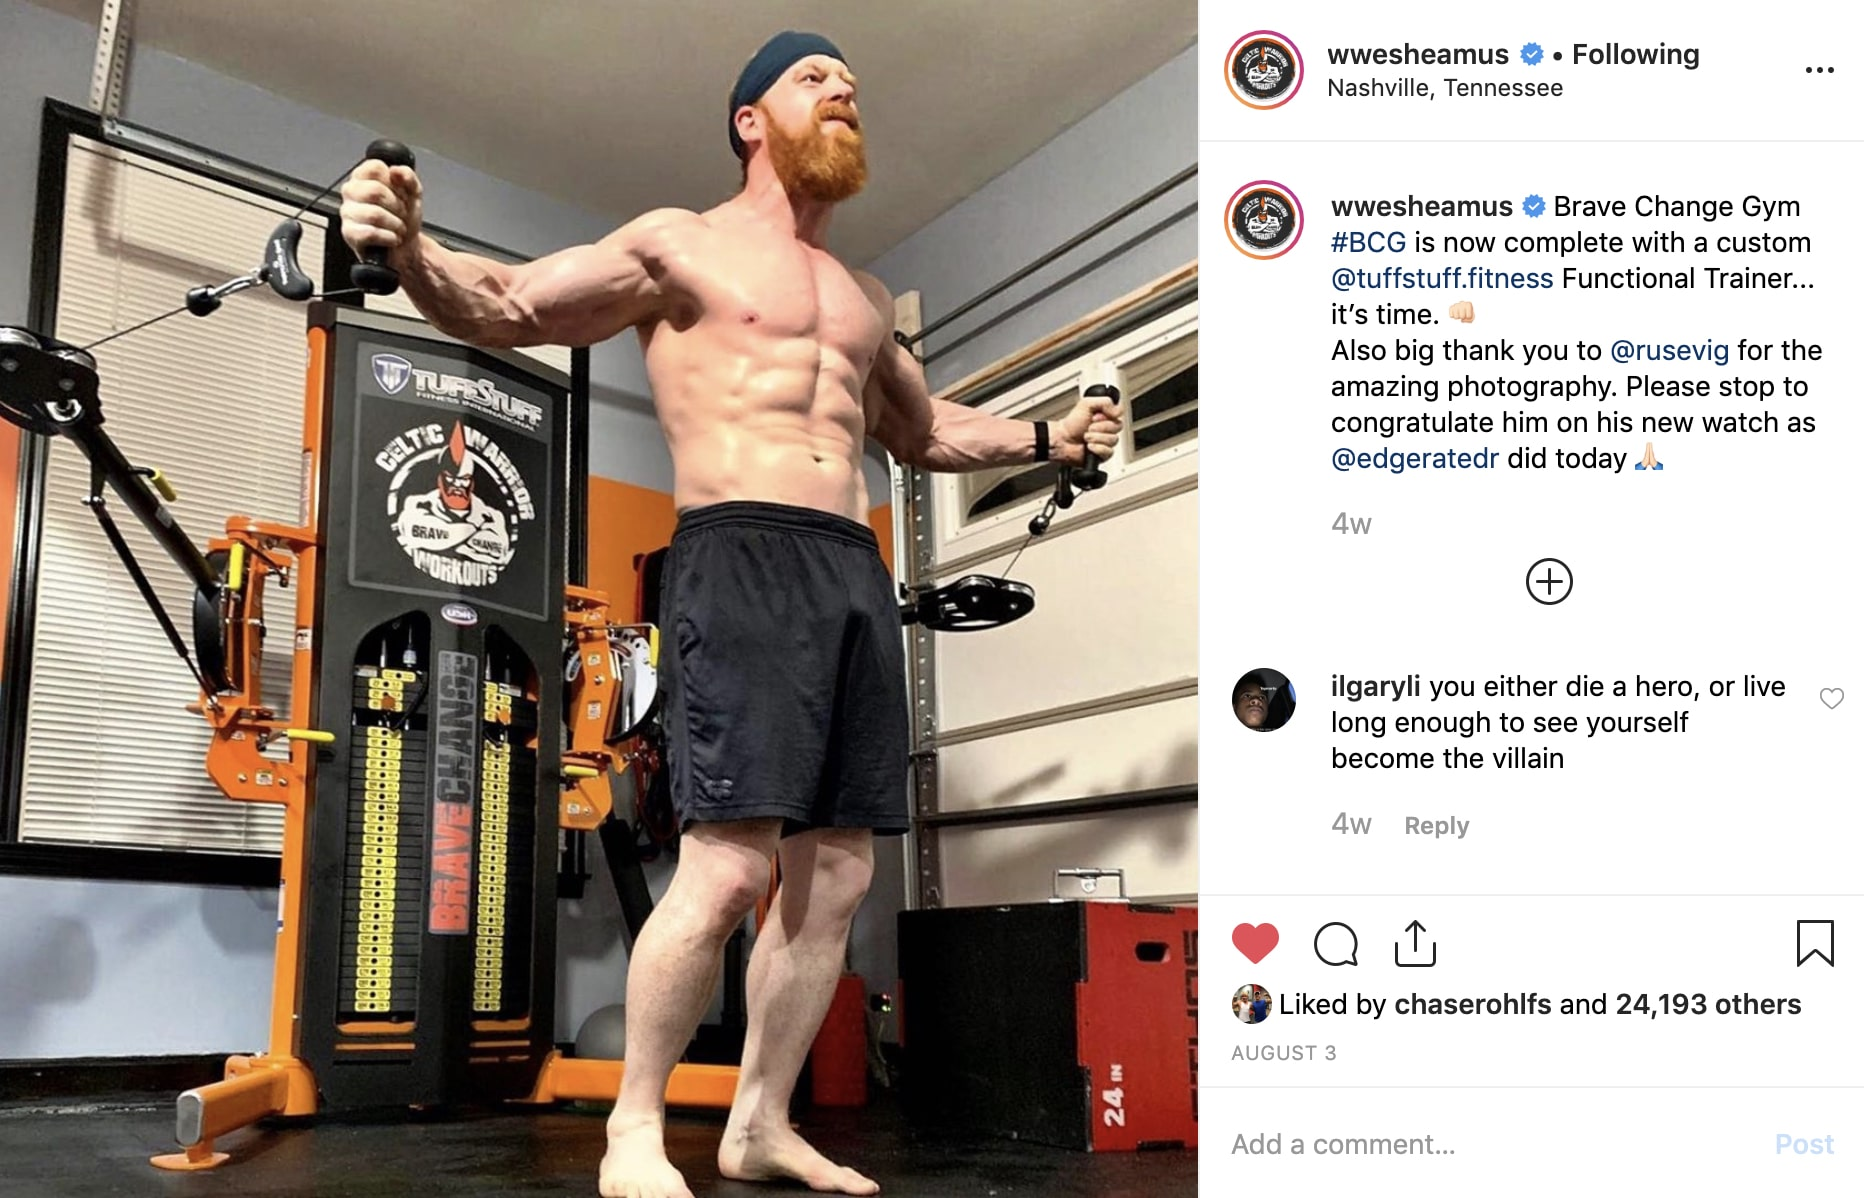 WWE Sheamus on Instagram - Brave Change Gym Functional Trainer